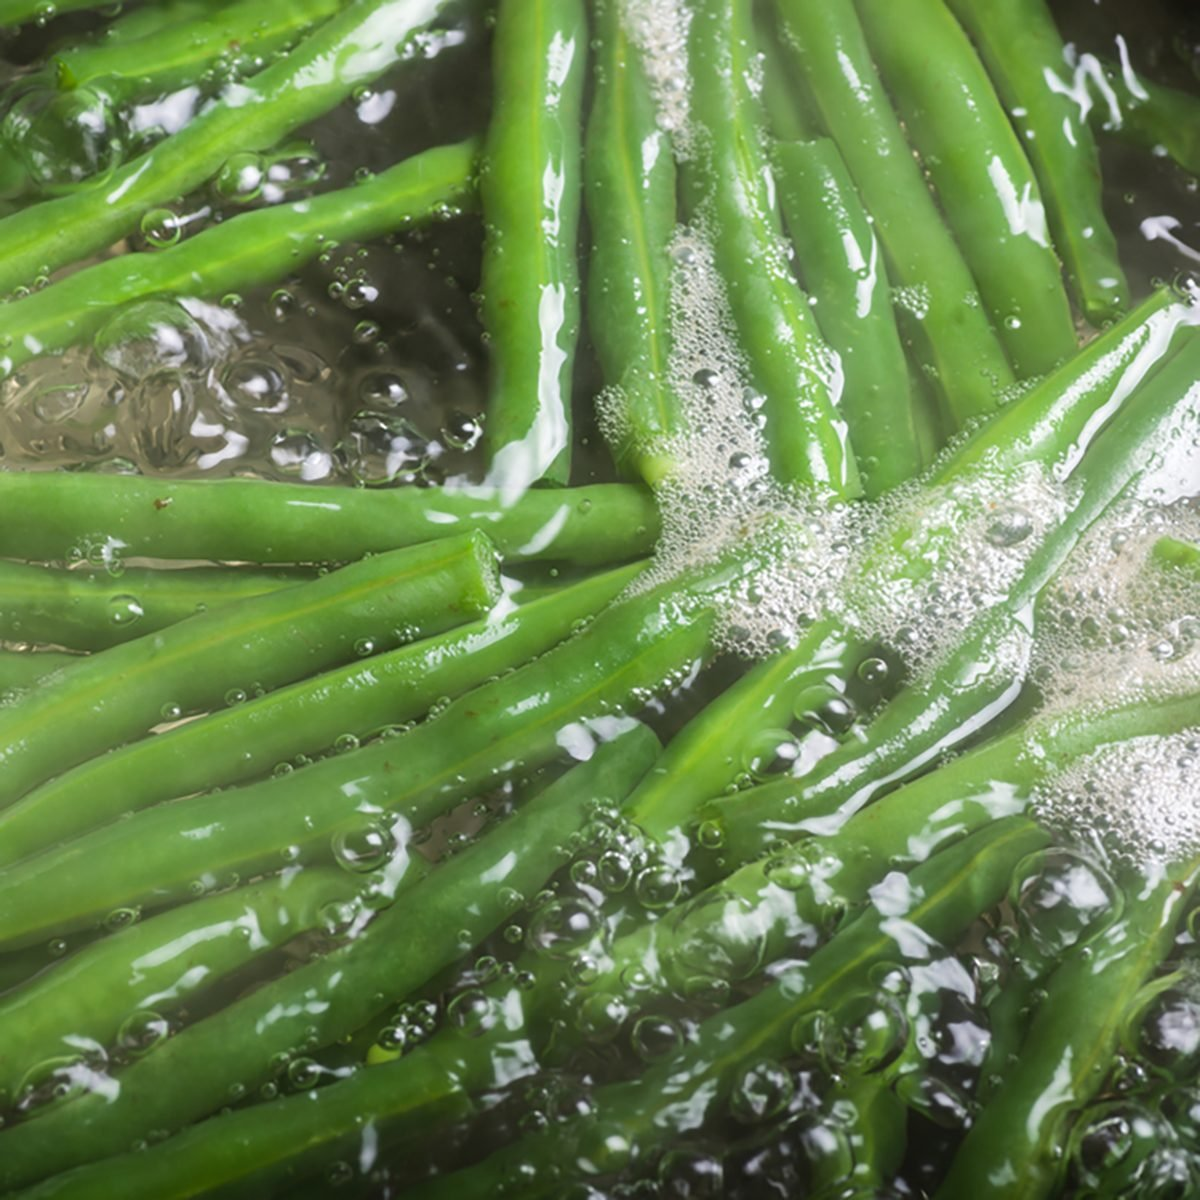 Fresh green beans boiling in water on stove